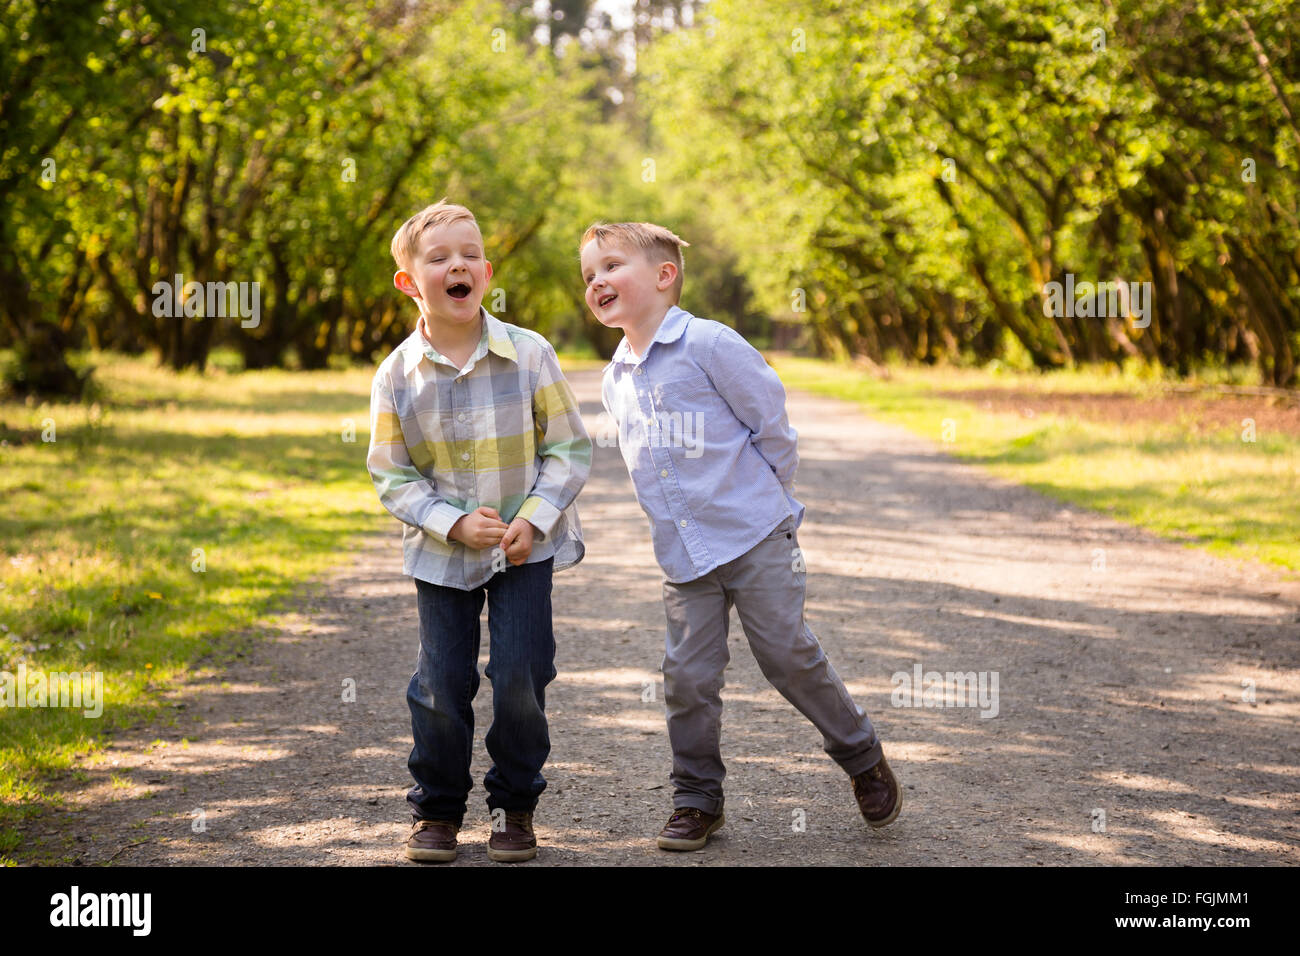 Two brothers together outdoors in a lifestyle portrait with natural light. - Stock Image